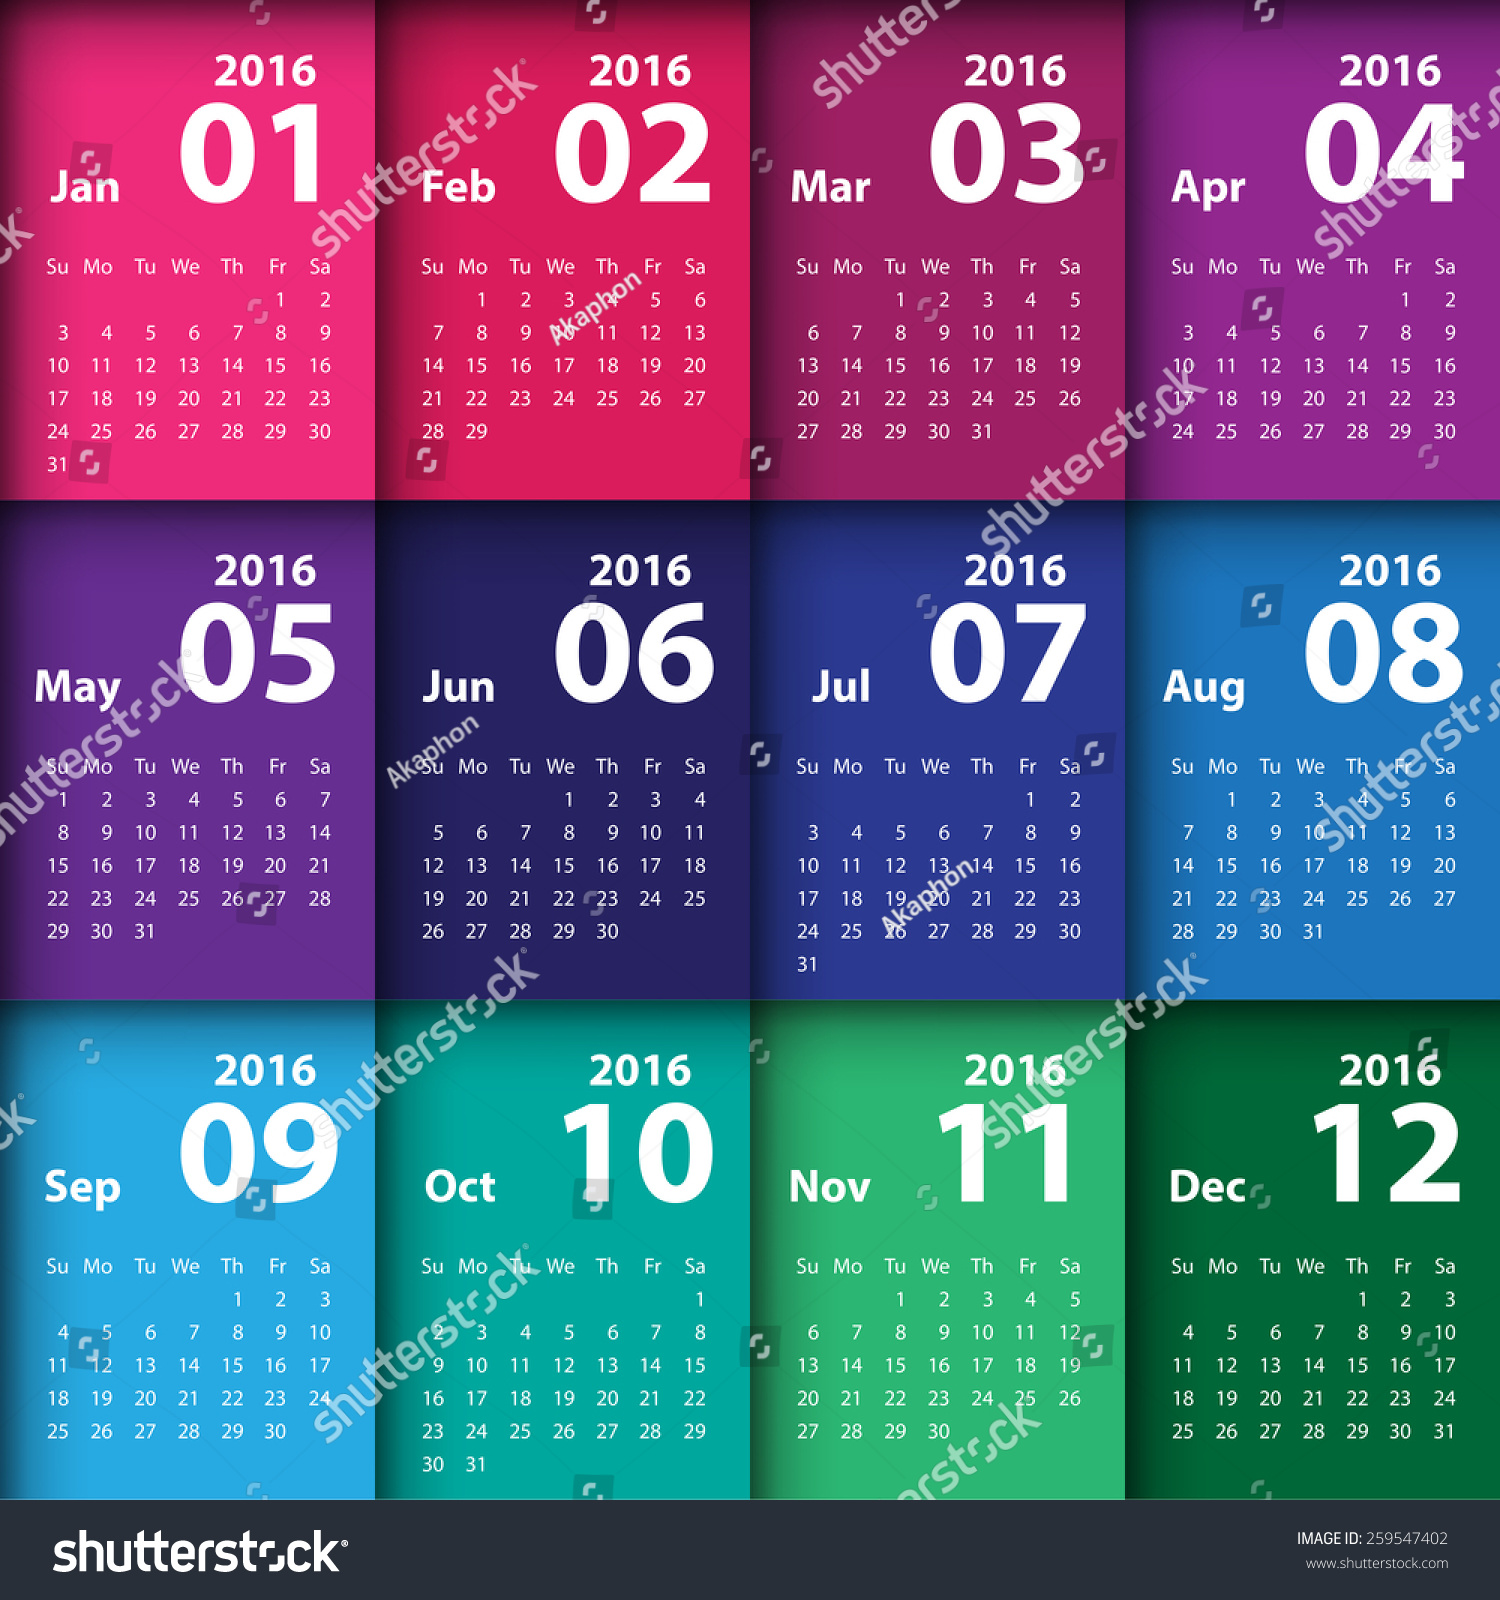 Calendar Design Pictures : Calendar simple design stock vector